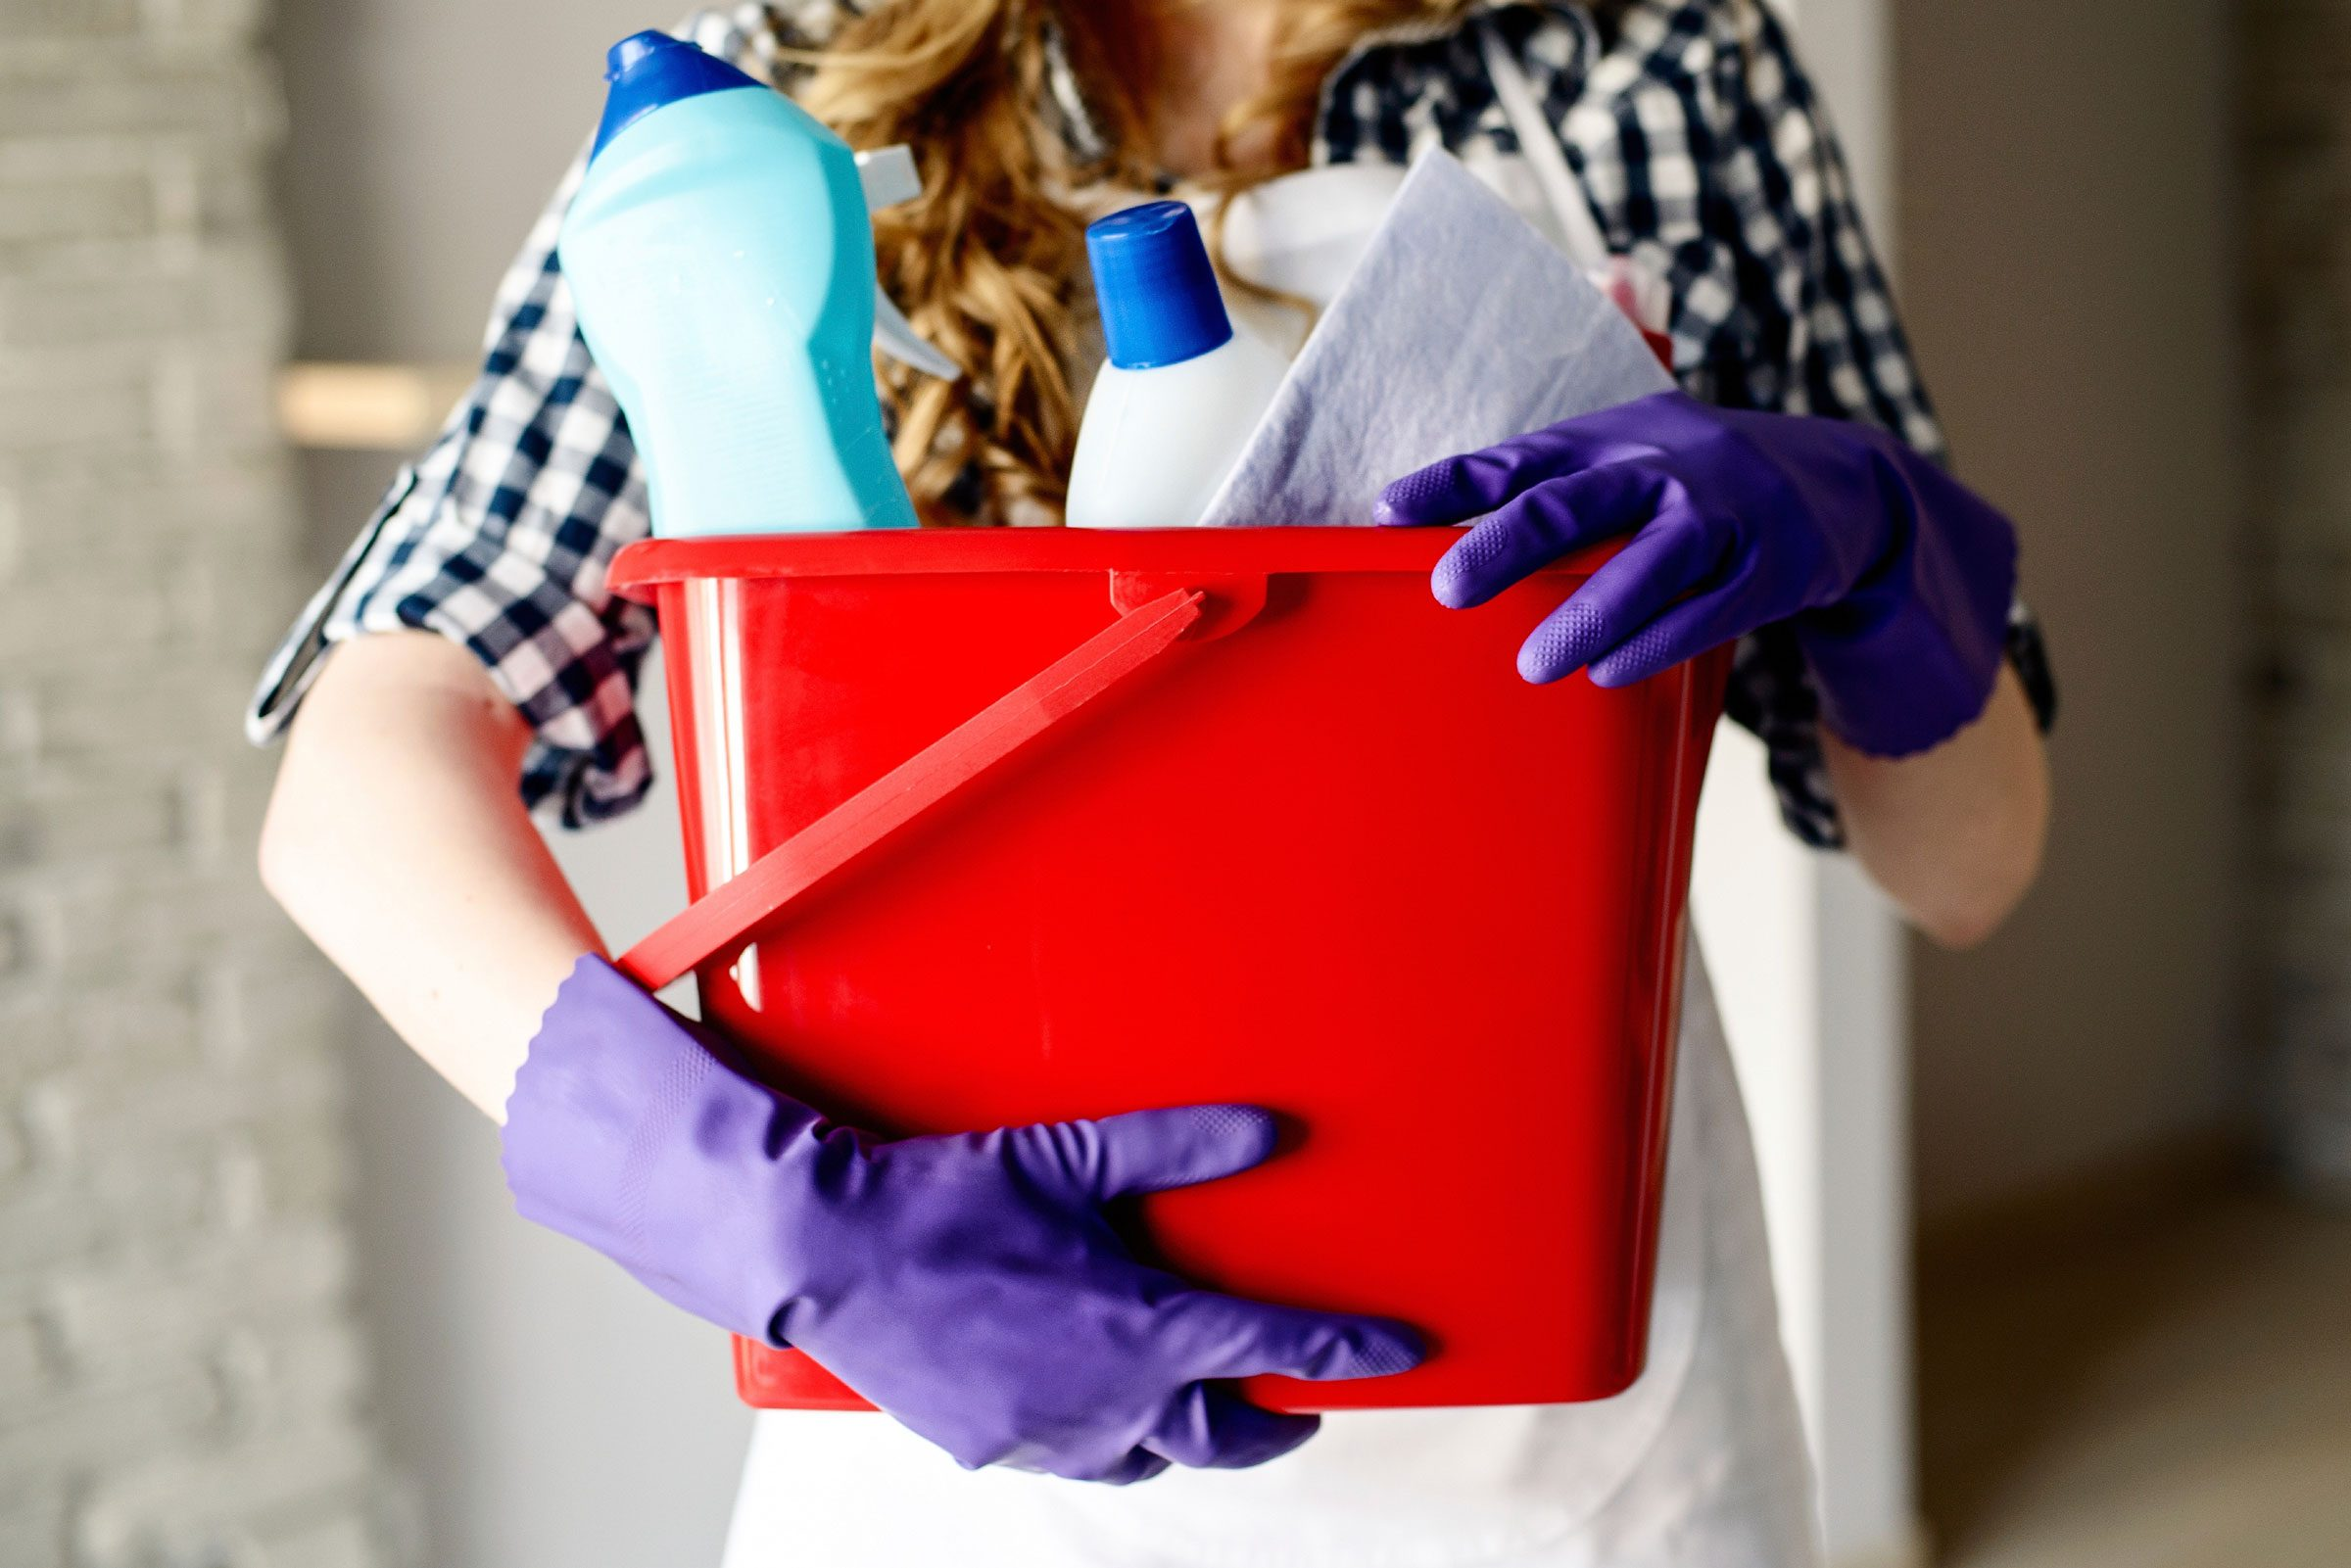 Image result for Residential Cleaning  iStock